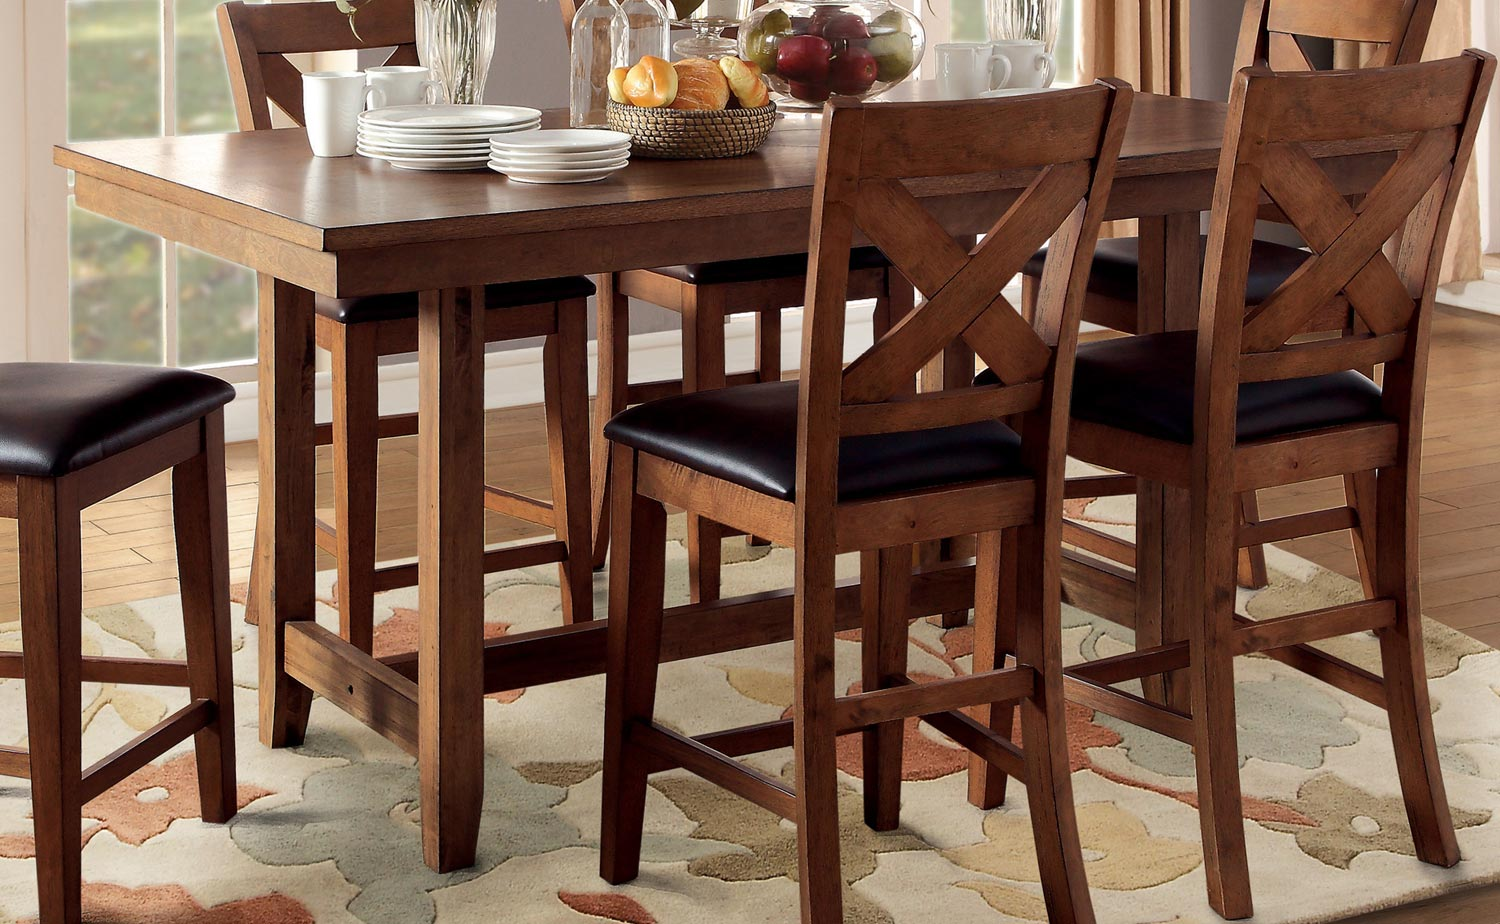 Homelegance Burrillville Trestle Counter Height Dining Set - Oak D5426 ...